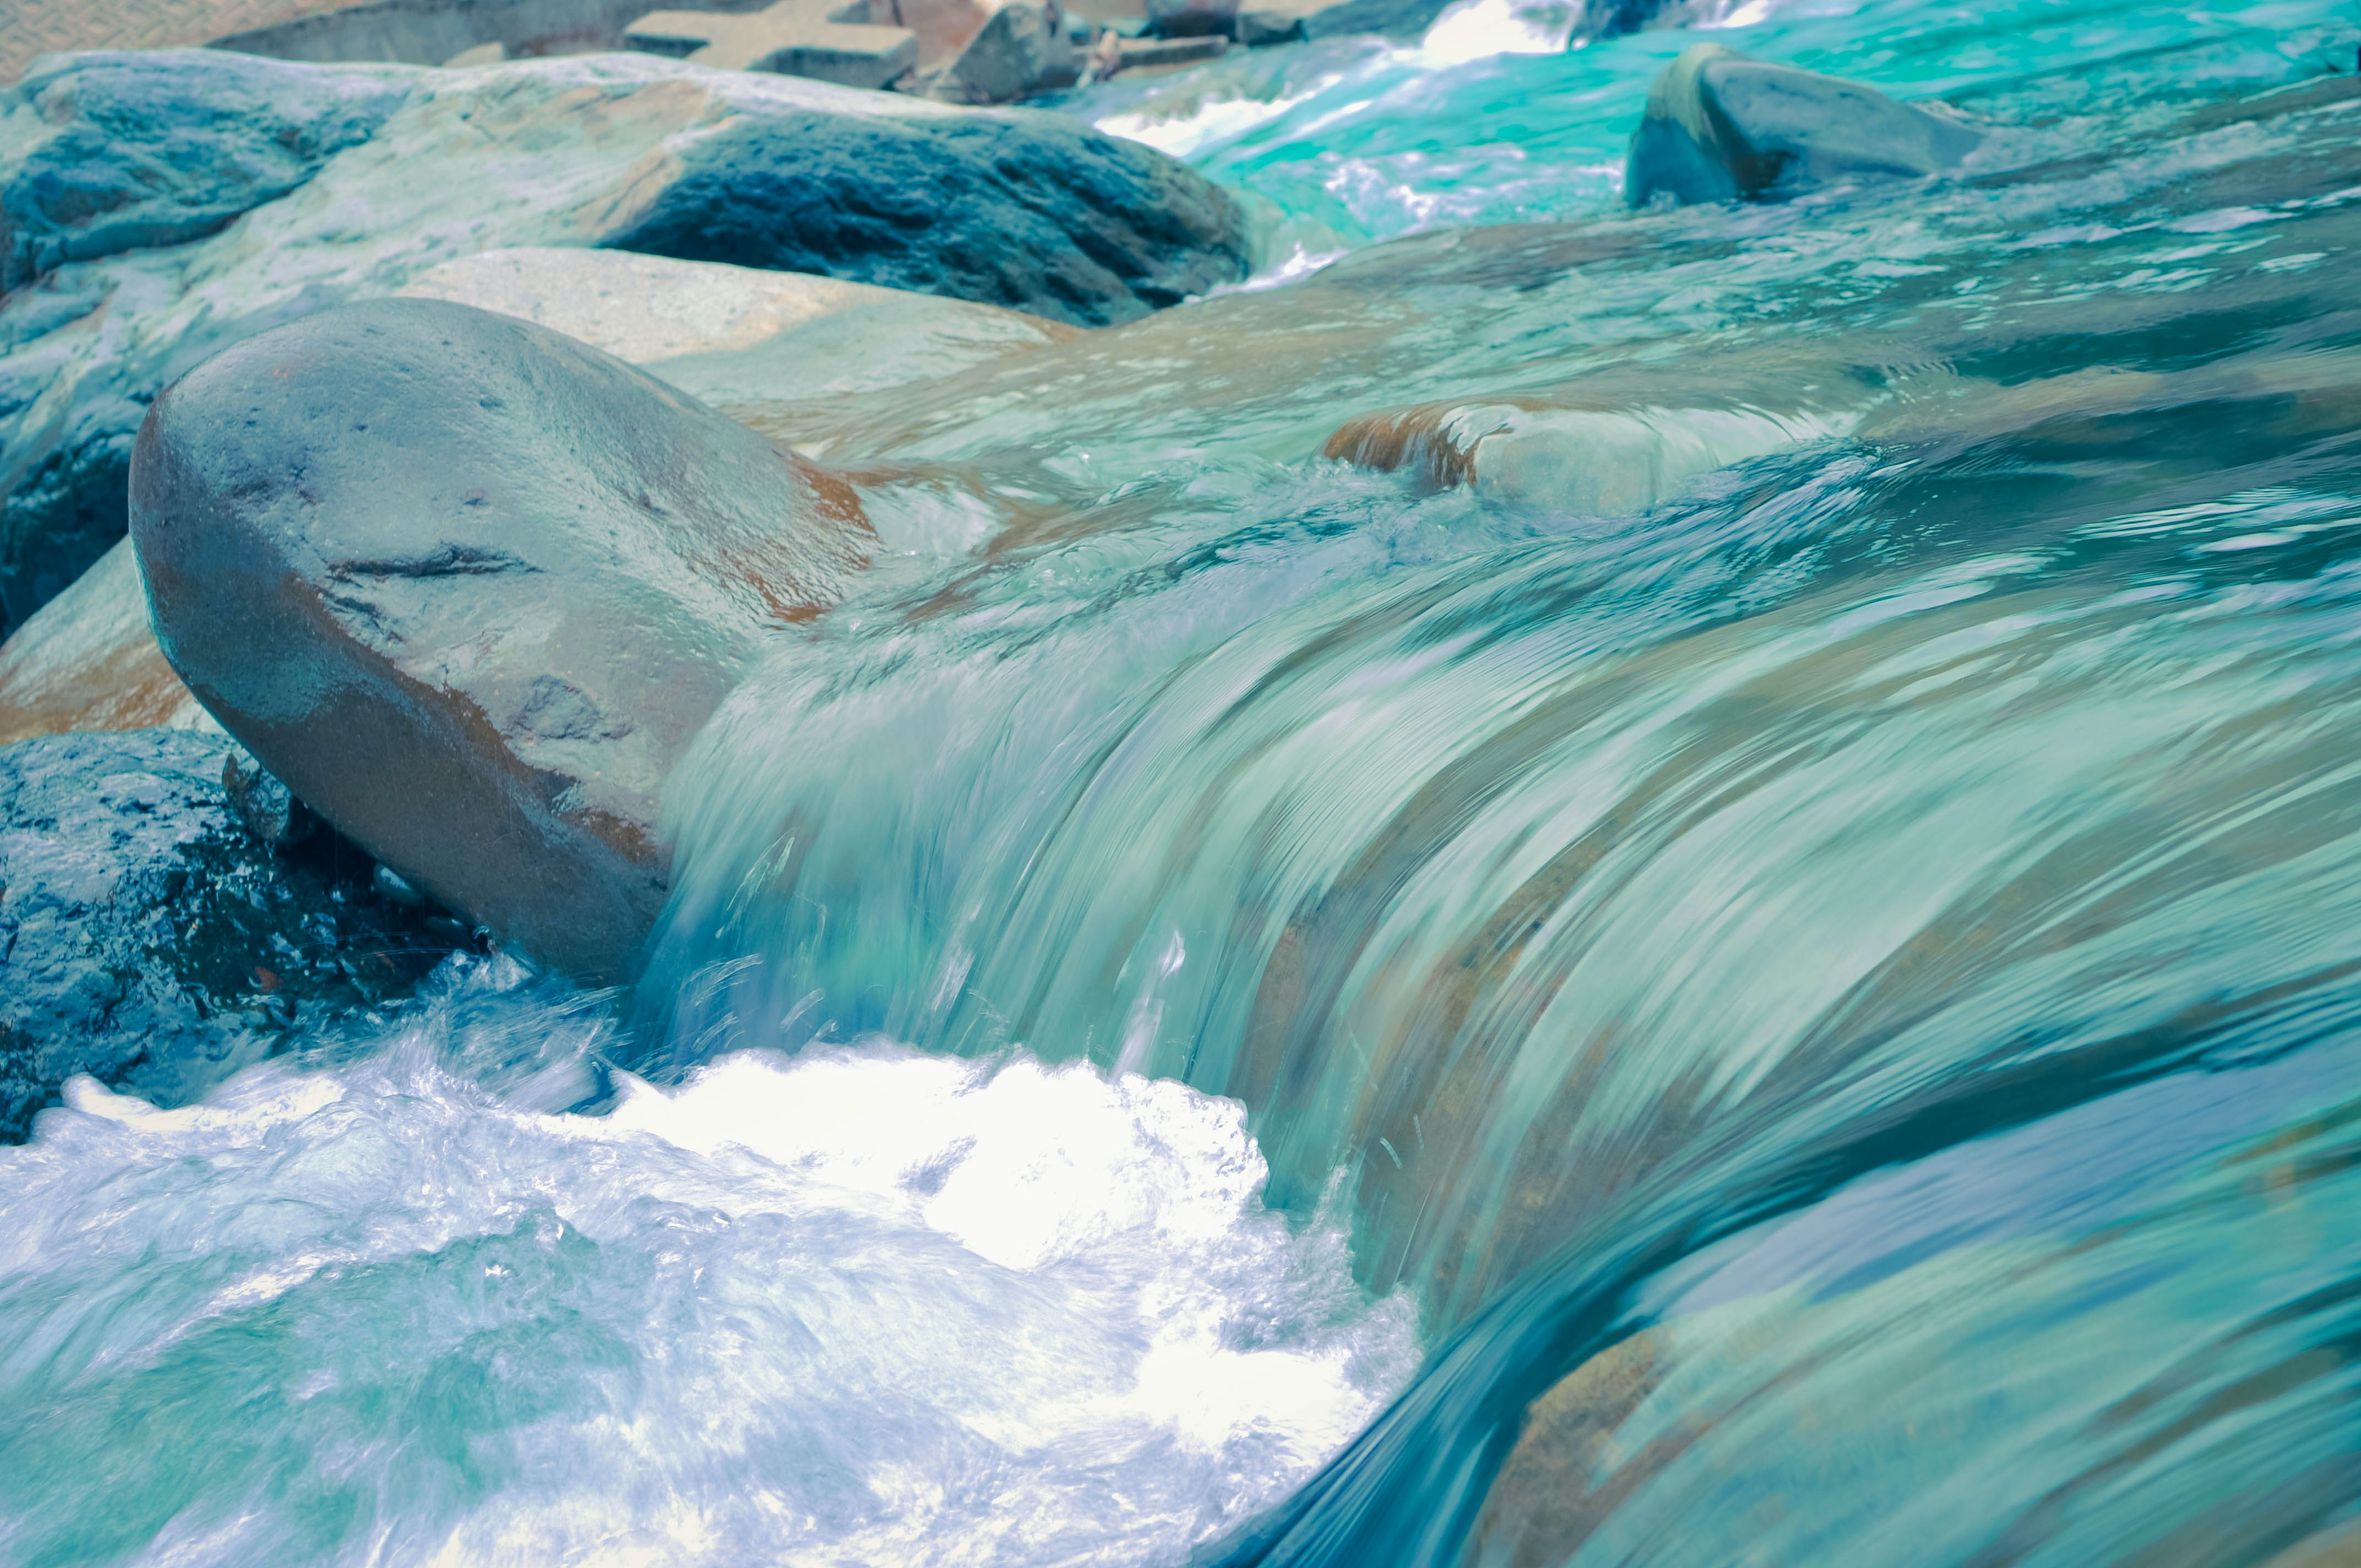 A close-up of clear turquoise water flowing down the rocky river bed